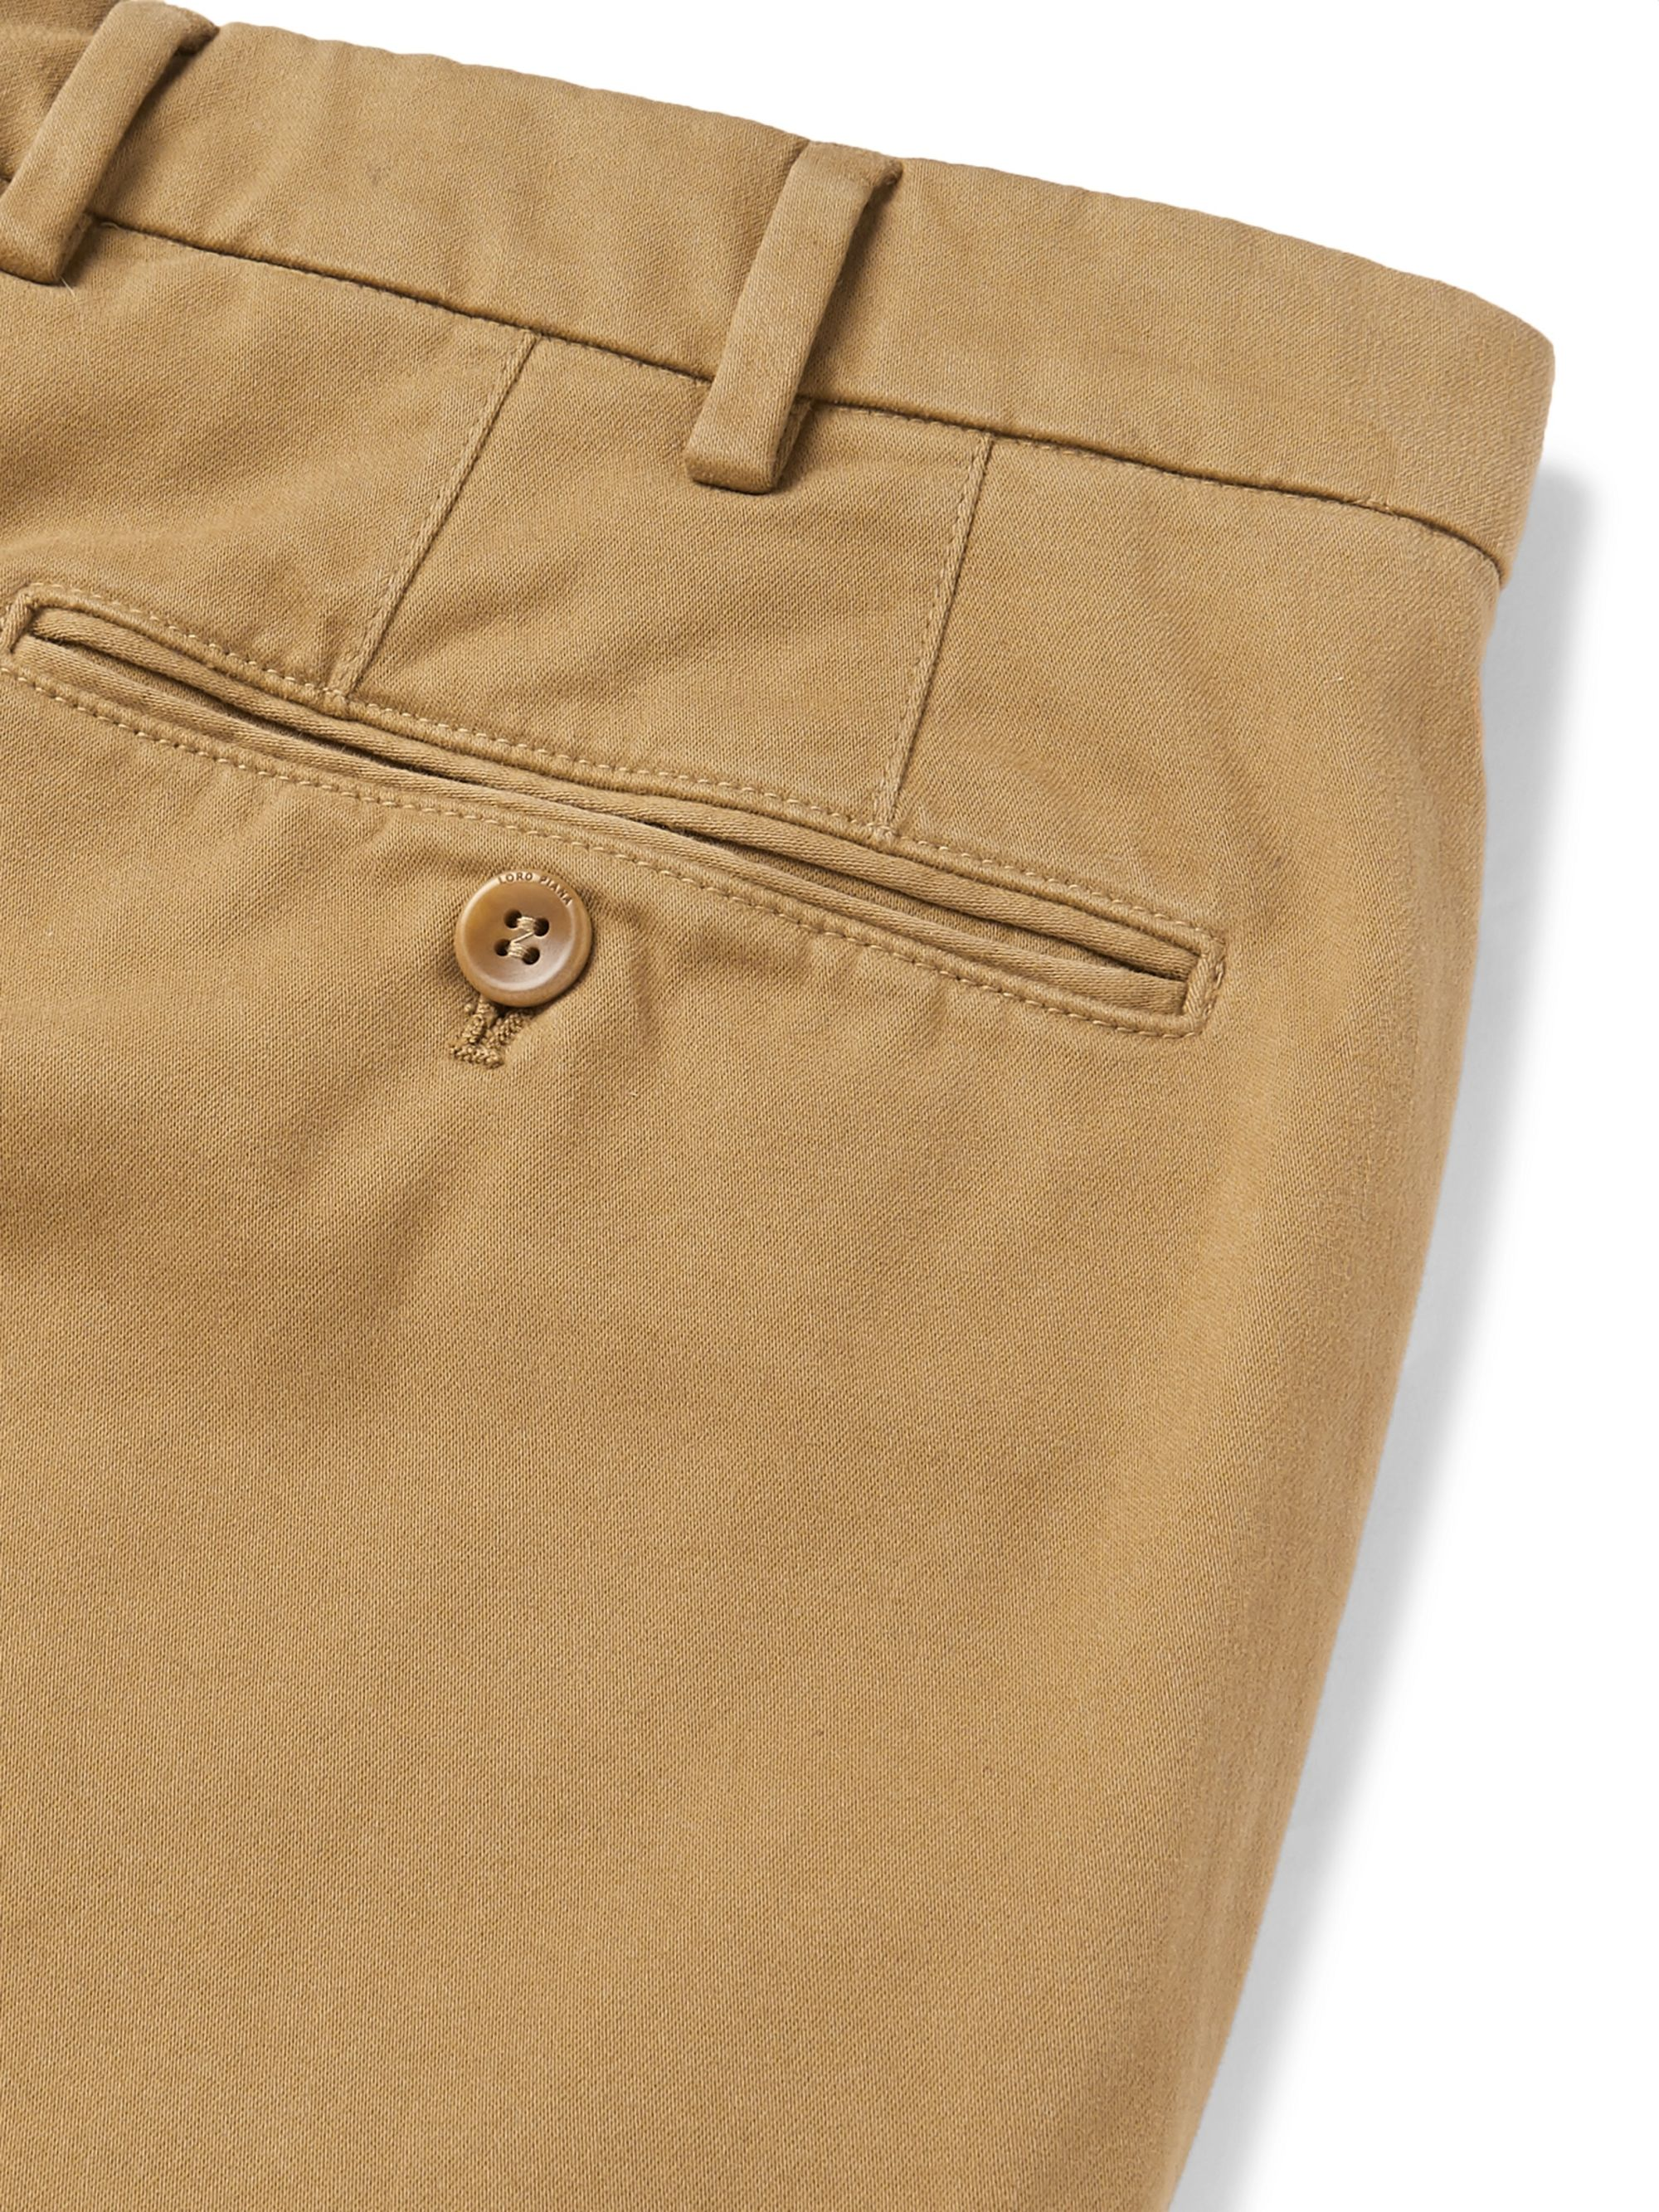 Loro Piana Cotton-Blend Twill Chinos